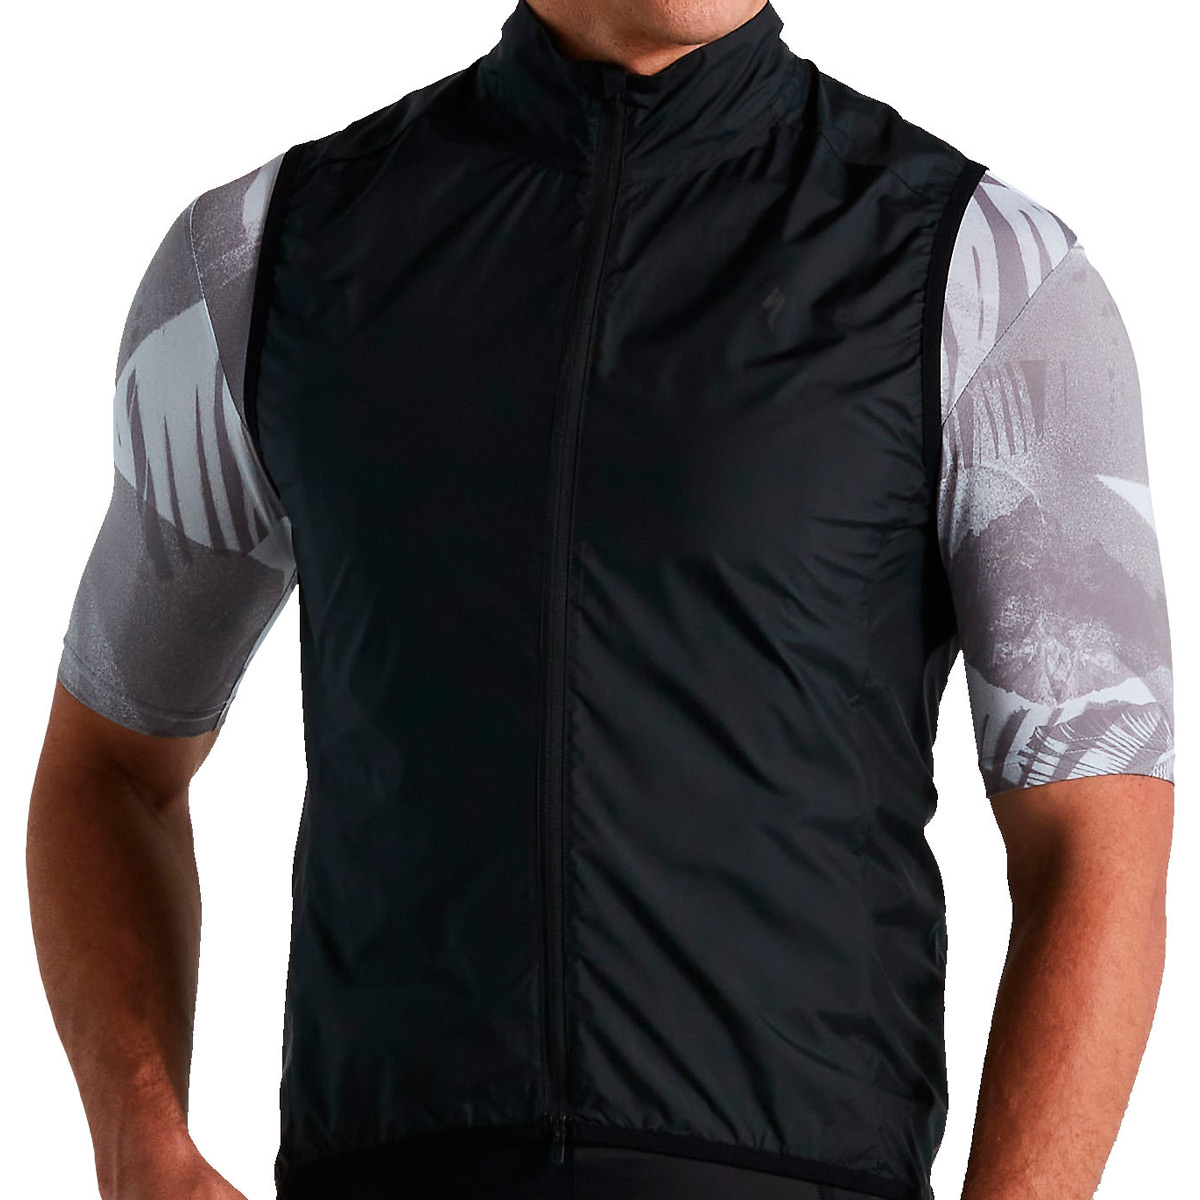 Colete Specialized Corta-Vento Gilet Race-Series